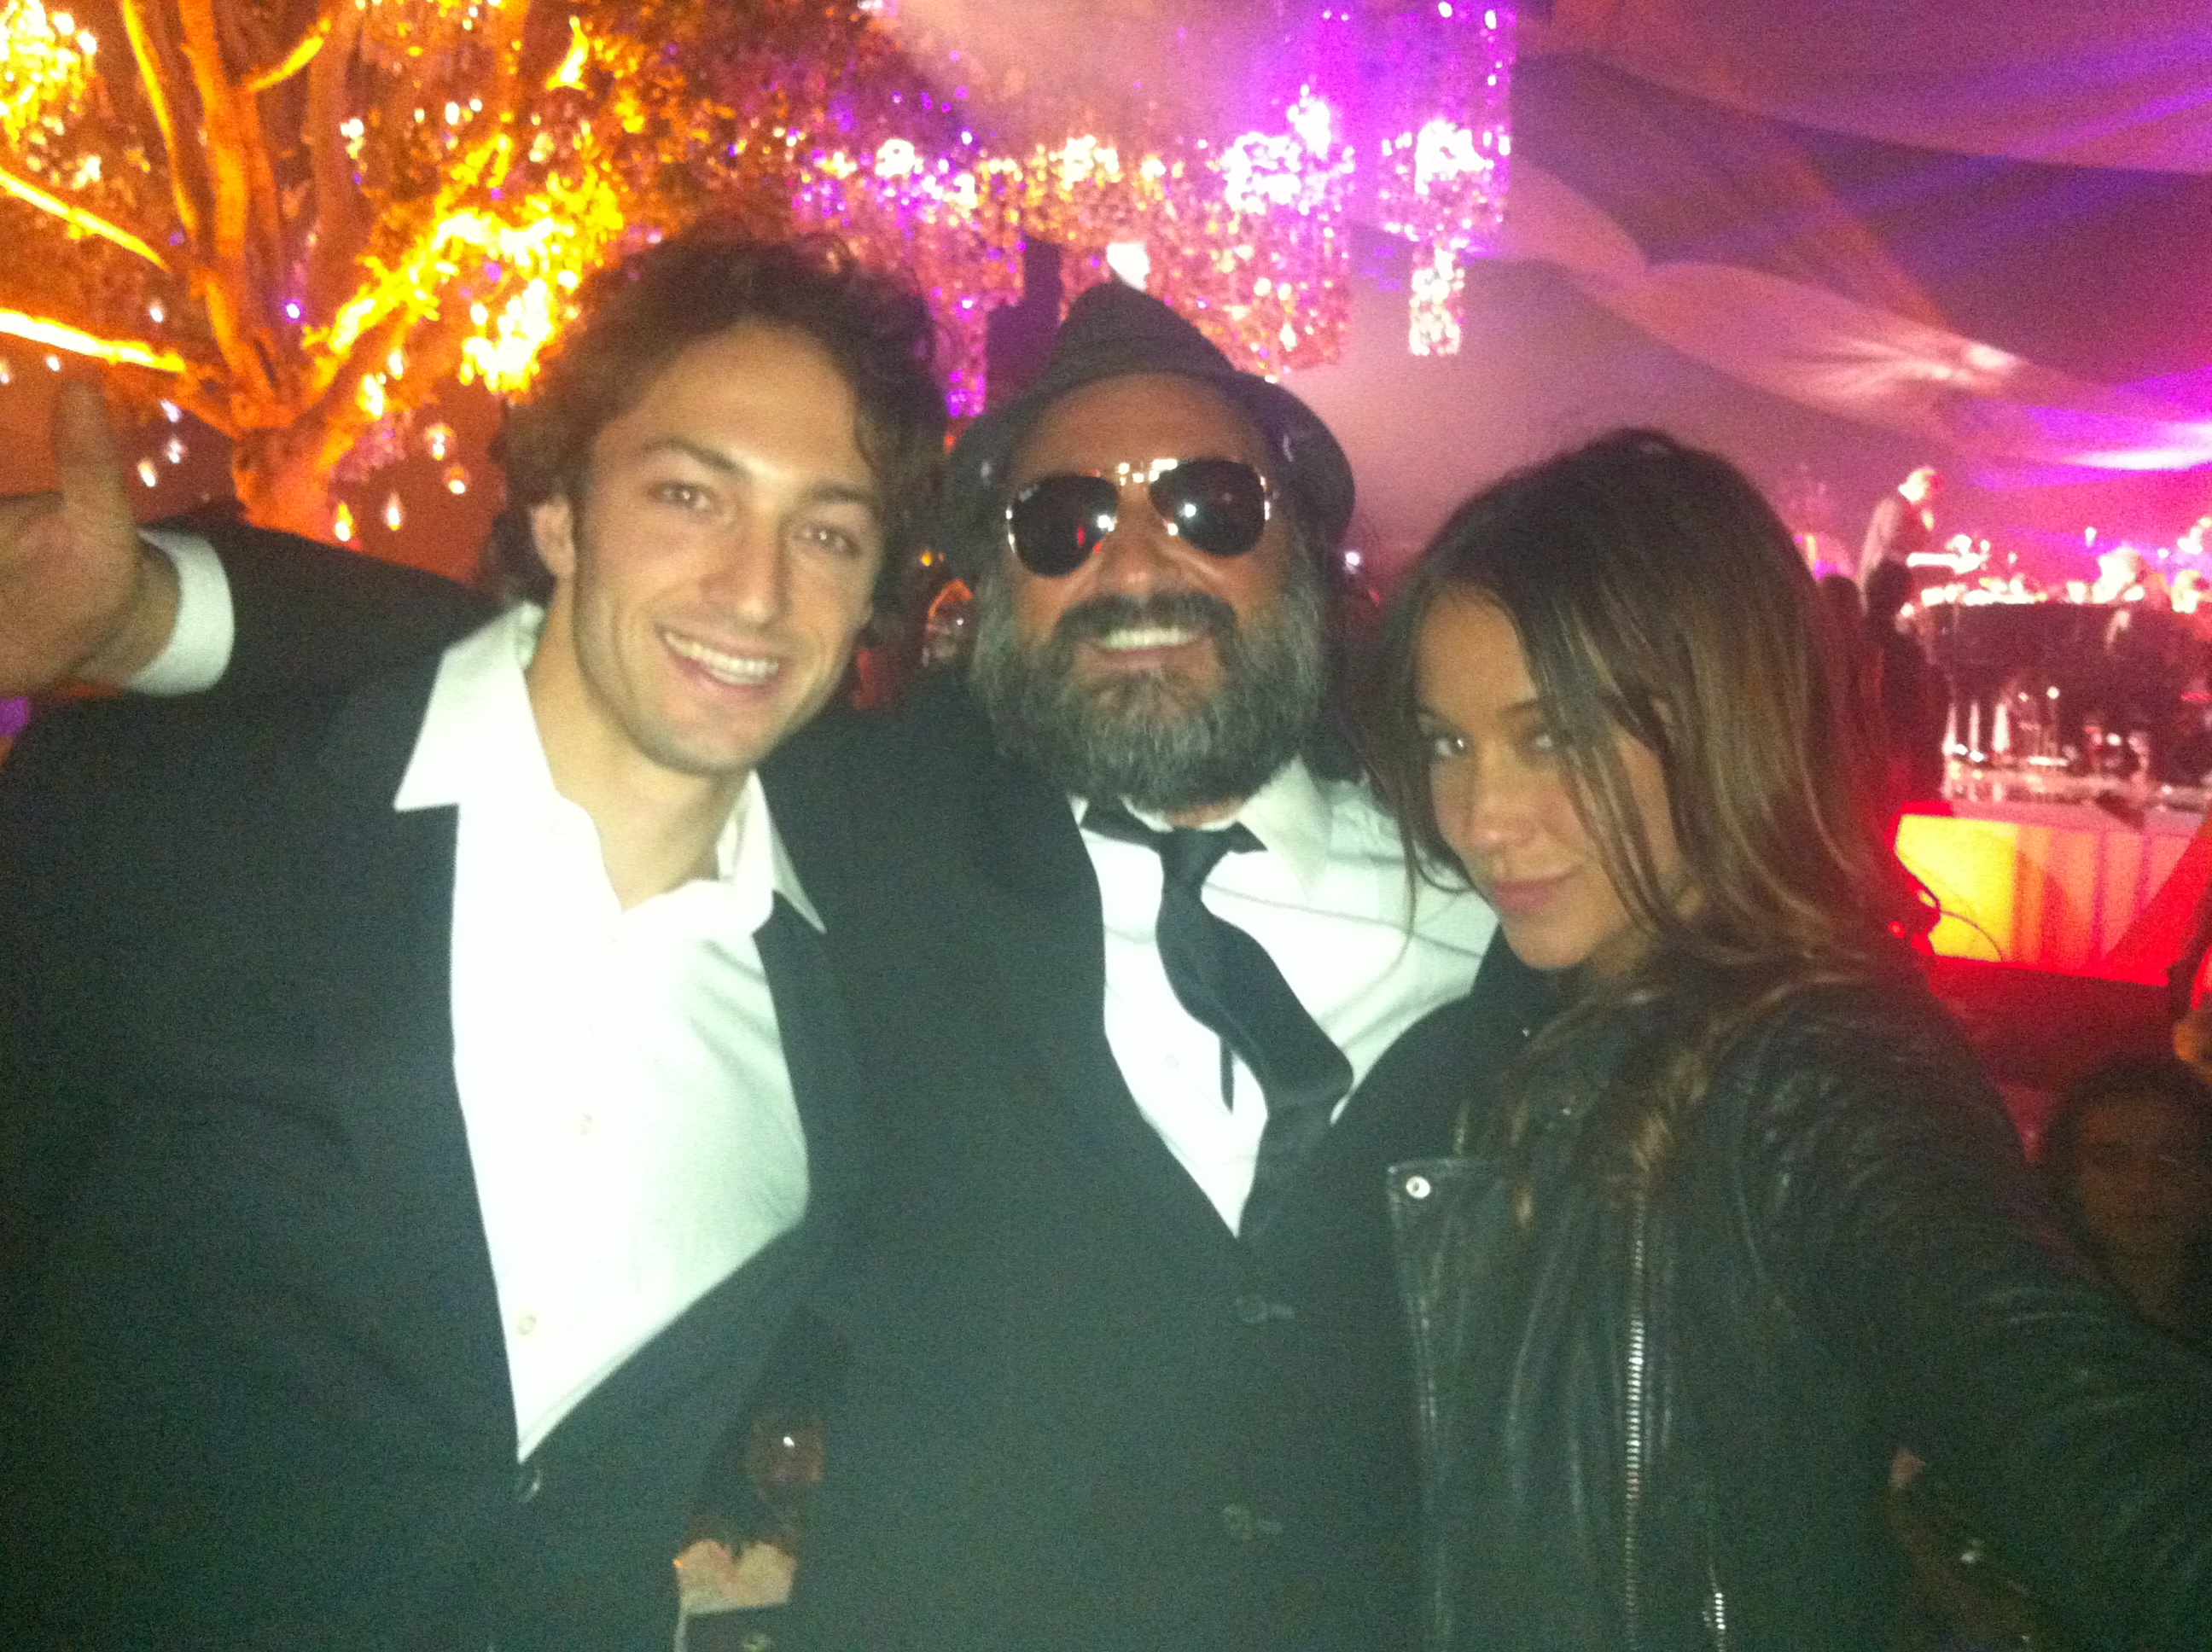 Matt Smiley, Mr. Brainwash (Thierry Guetta) and Stella Maeve